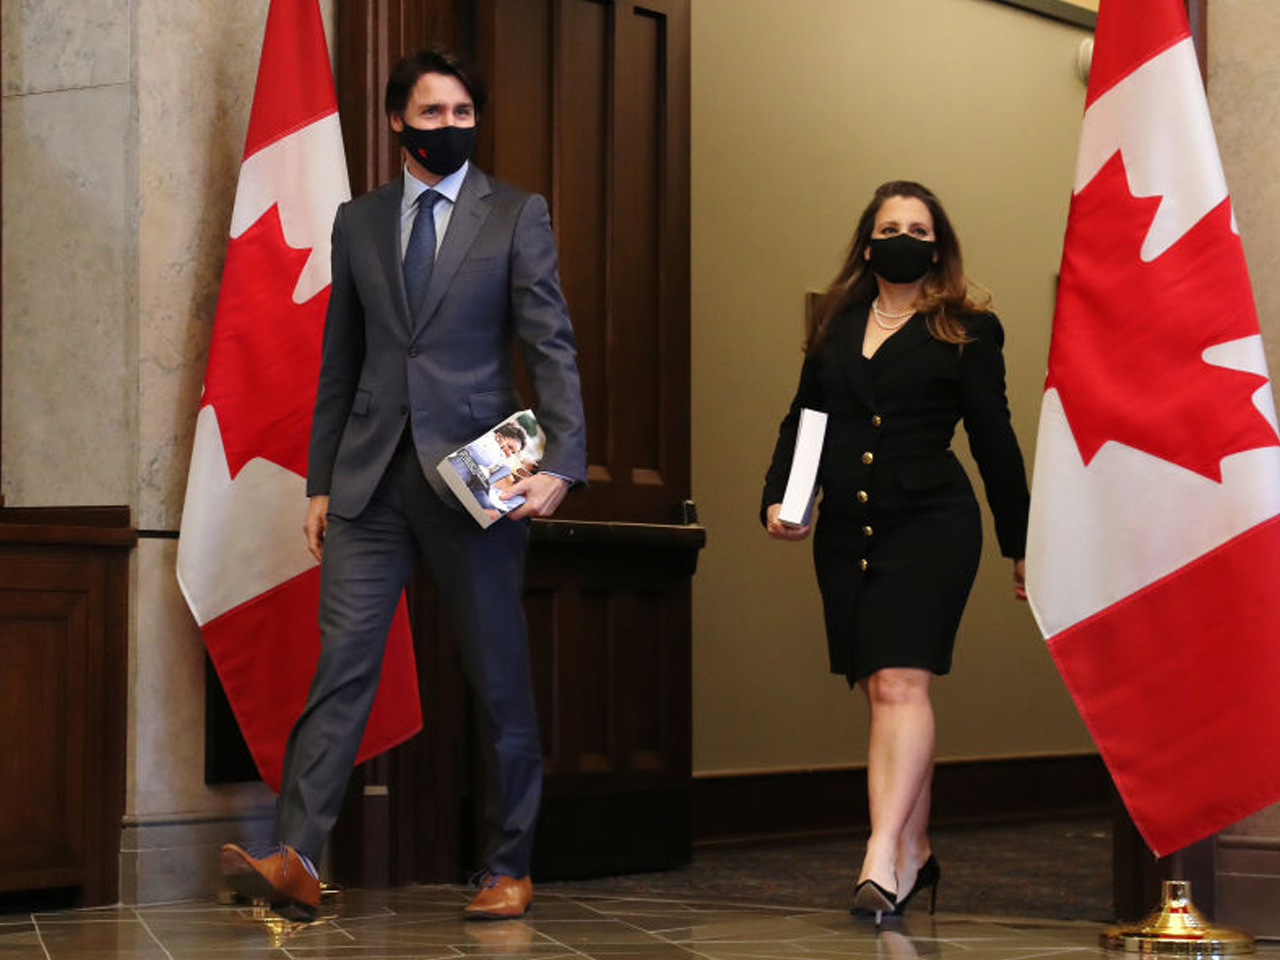 Justin Trudeau and Chystia Freeland arrive for tabling of 2021 budget